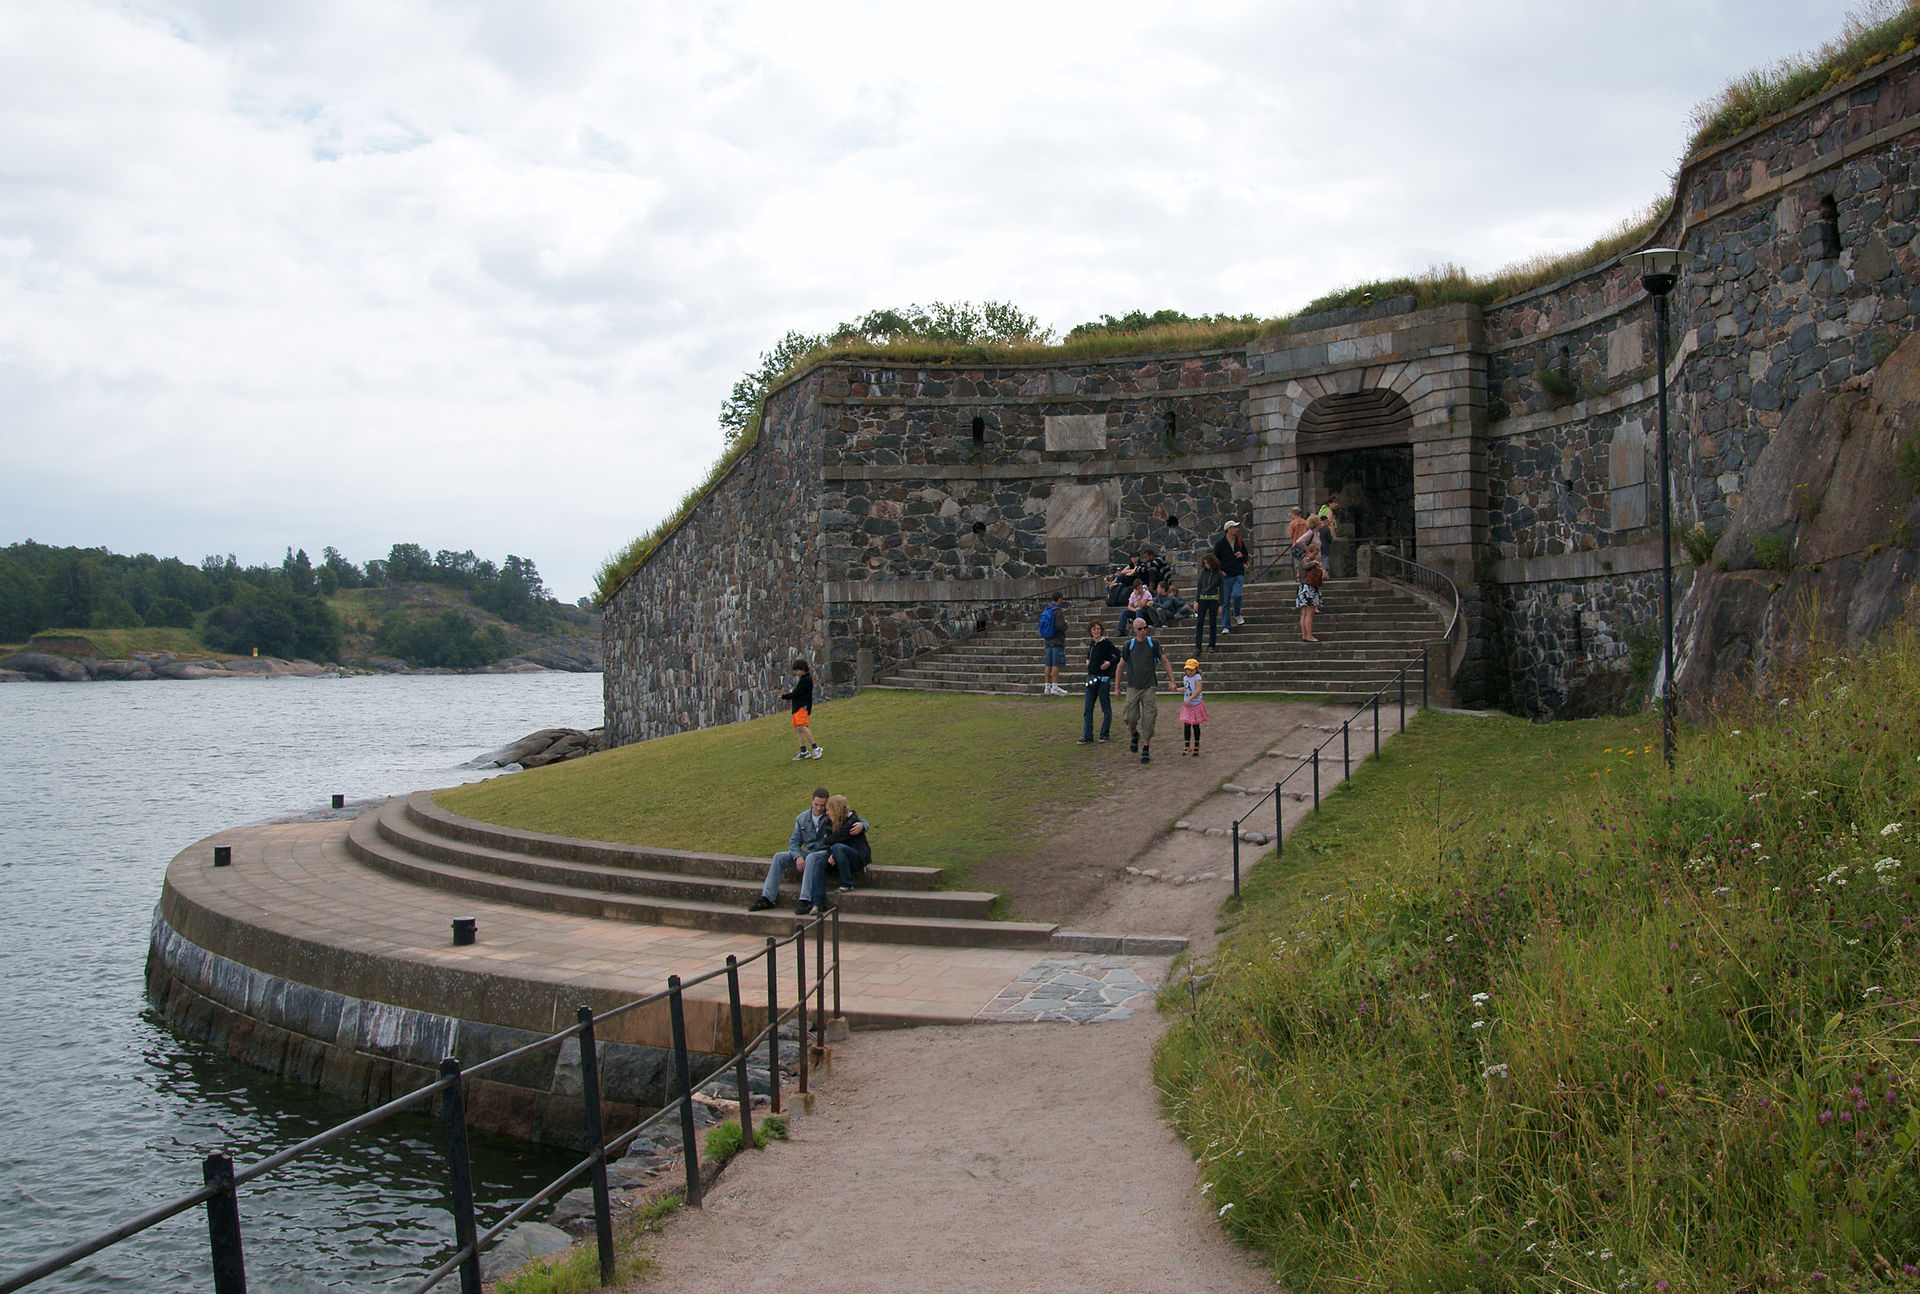 Sea Fortress of Suomenlinna